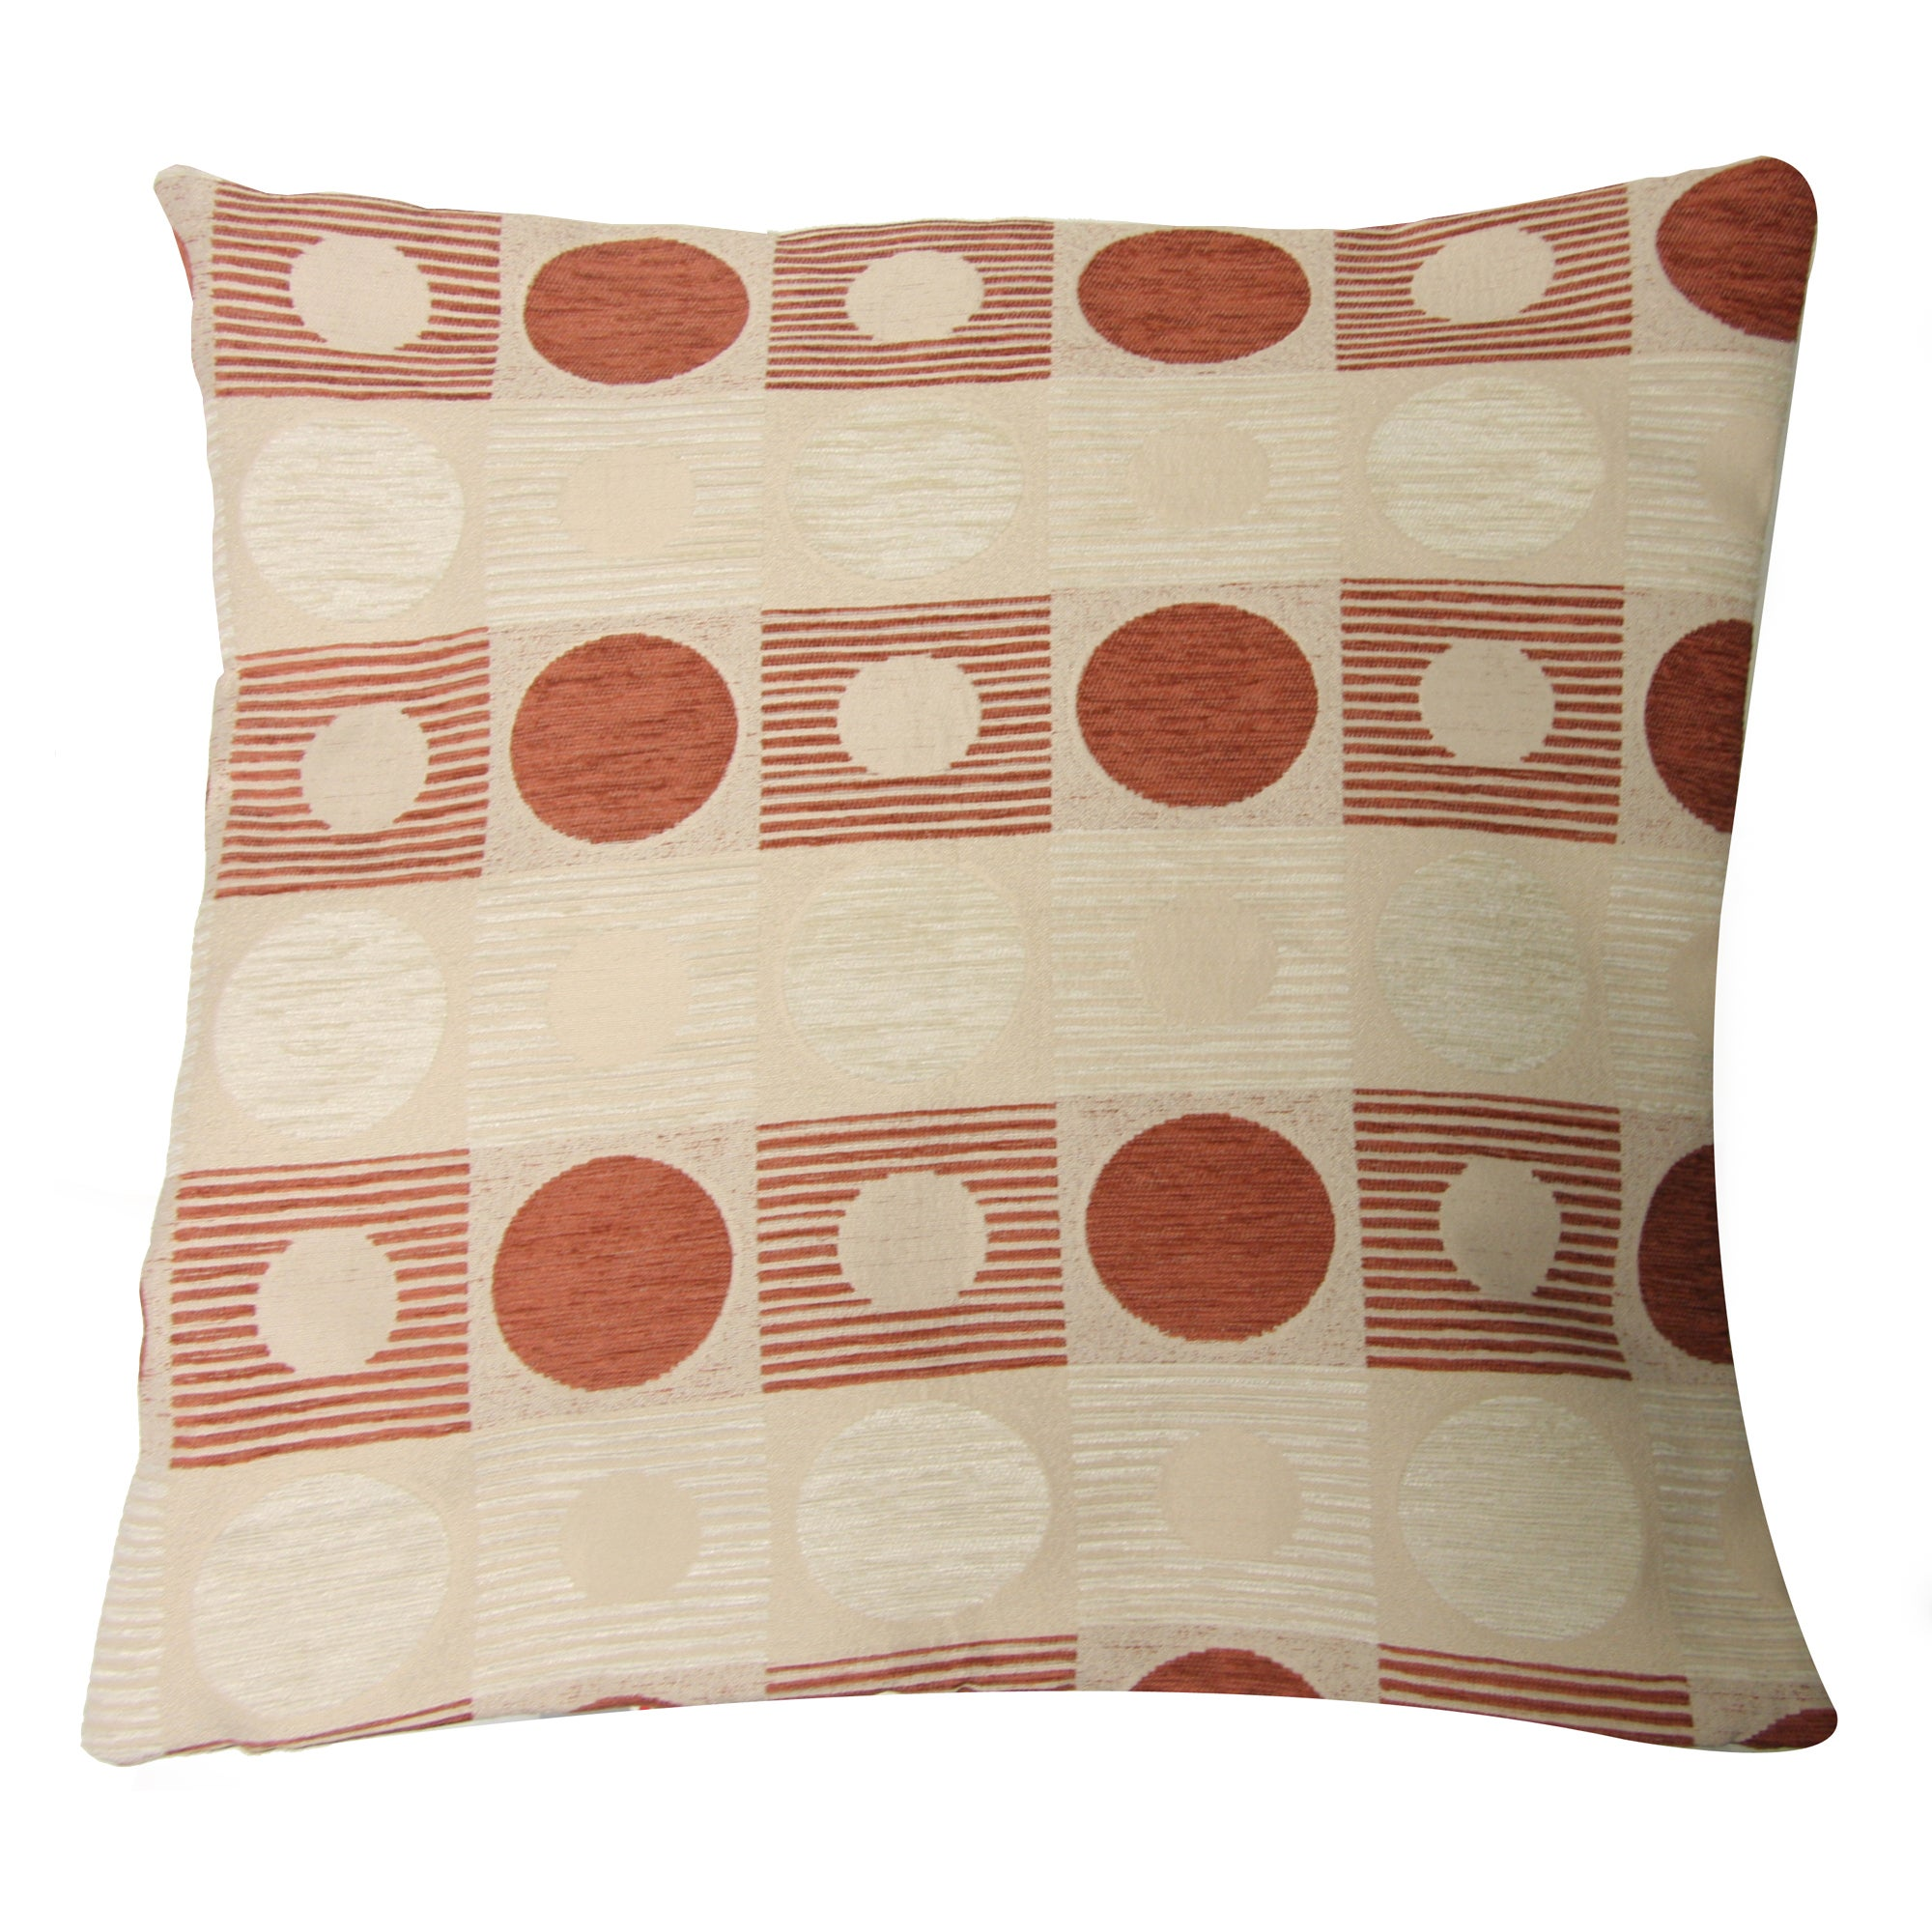 Photo of Richmond cushion cover terracotta